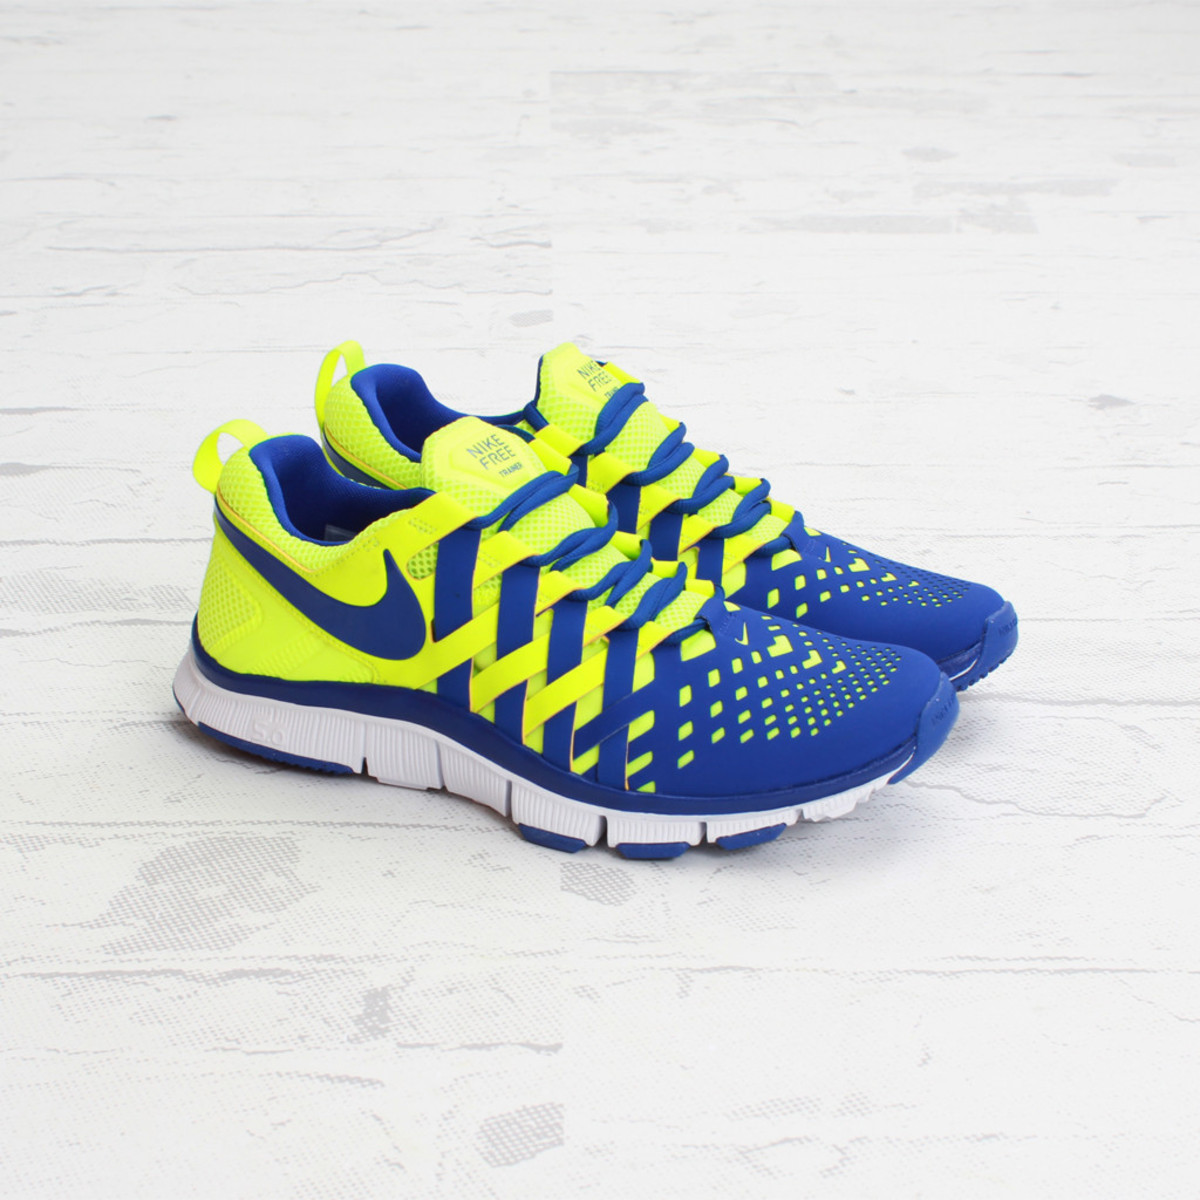 nike_freetrainer50_volthyperblue_01_1024x1024